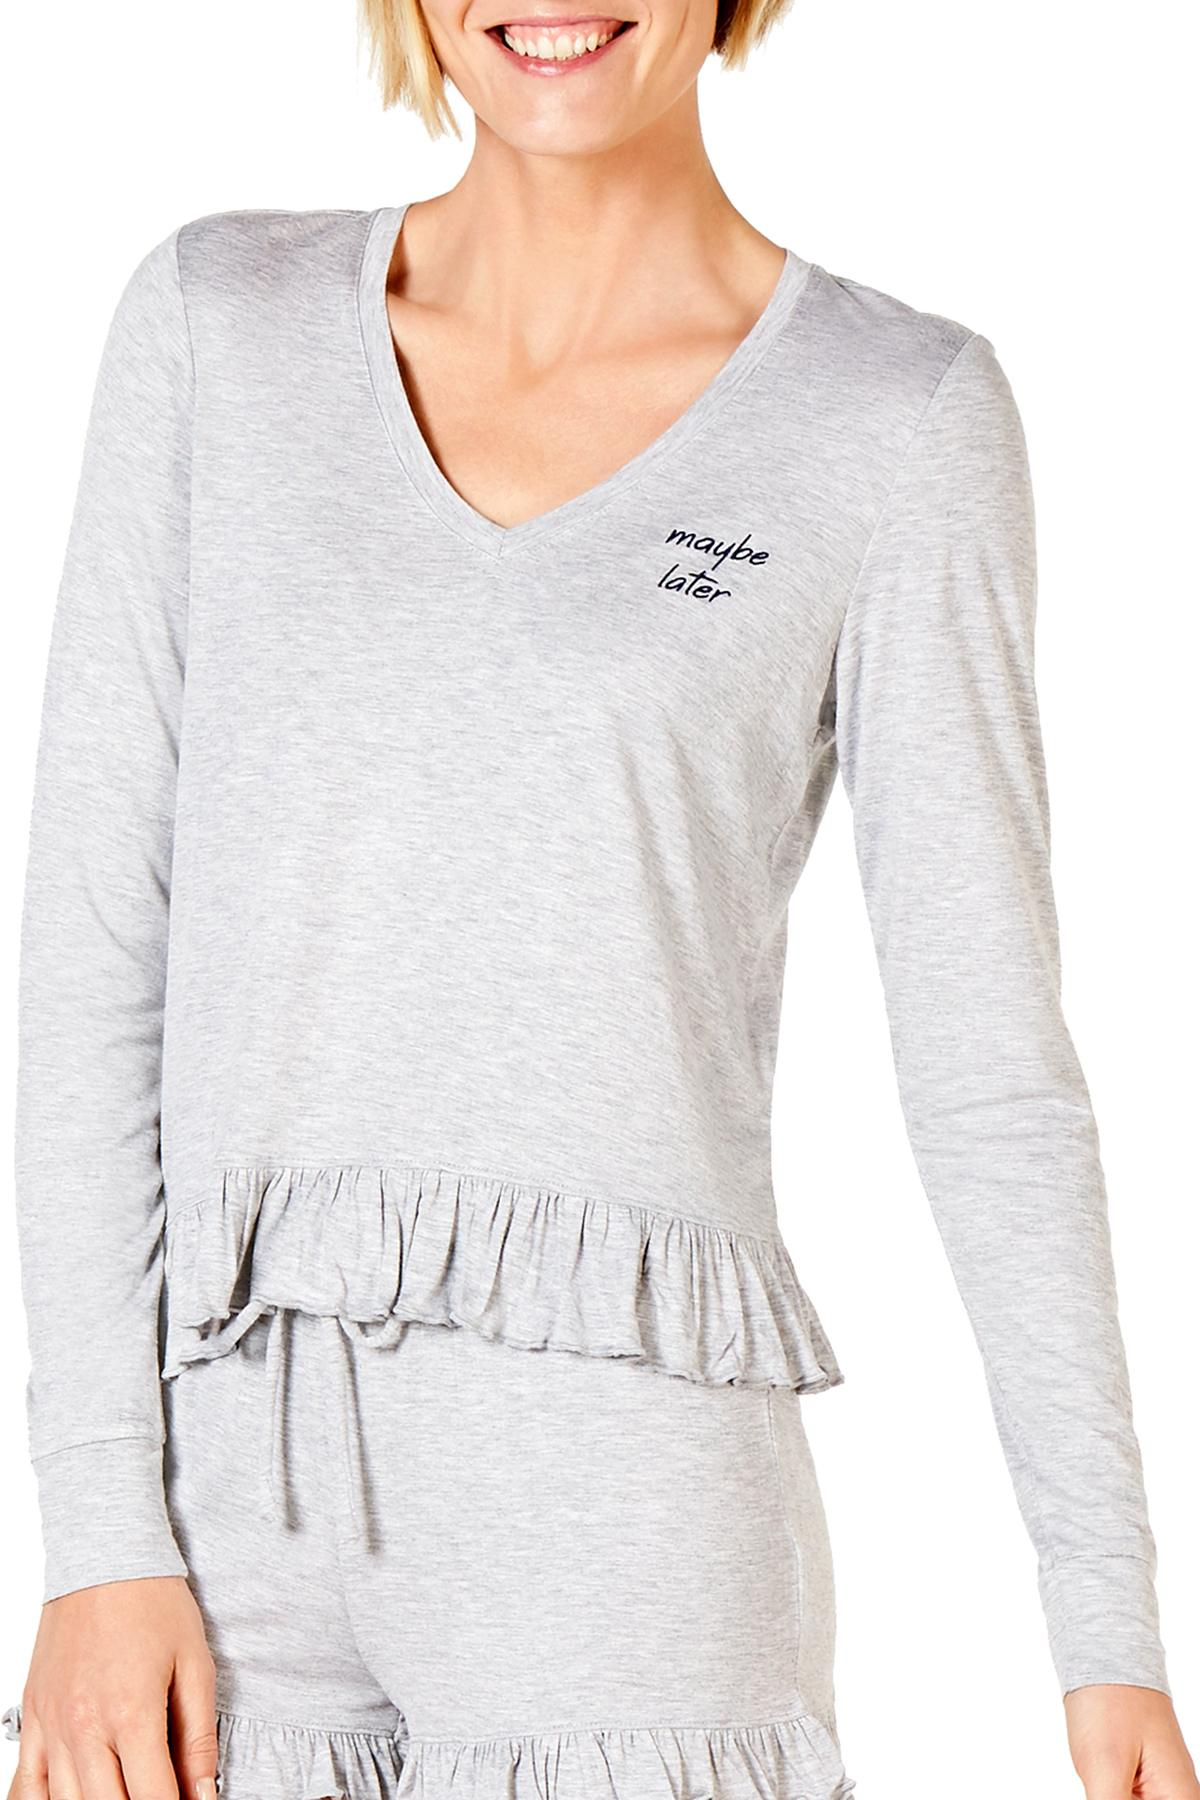 Jenni Ruffled Ultra Soft Knit Lounge Top in Maybe Later Heather Grey